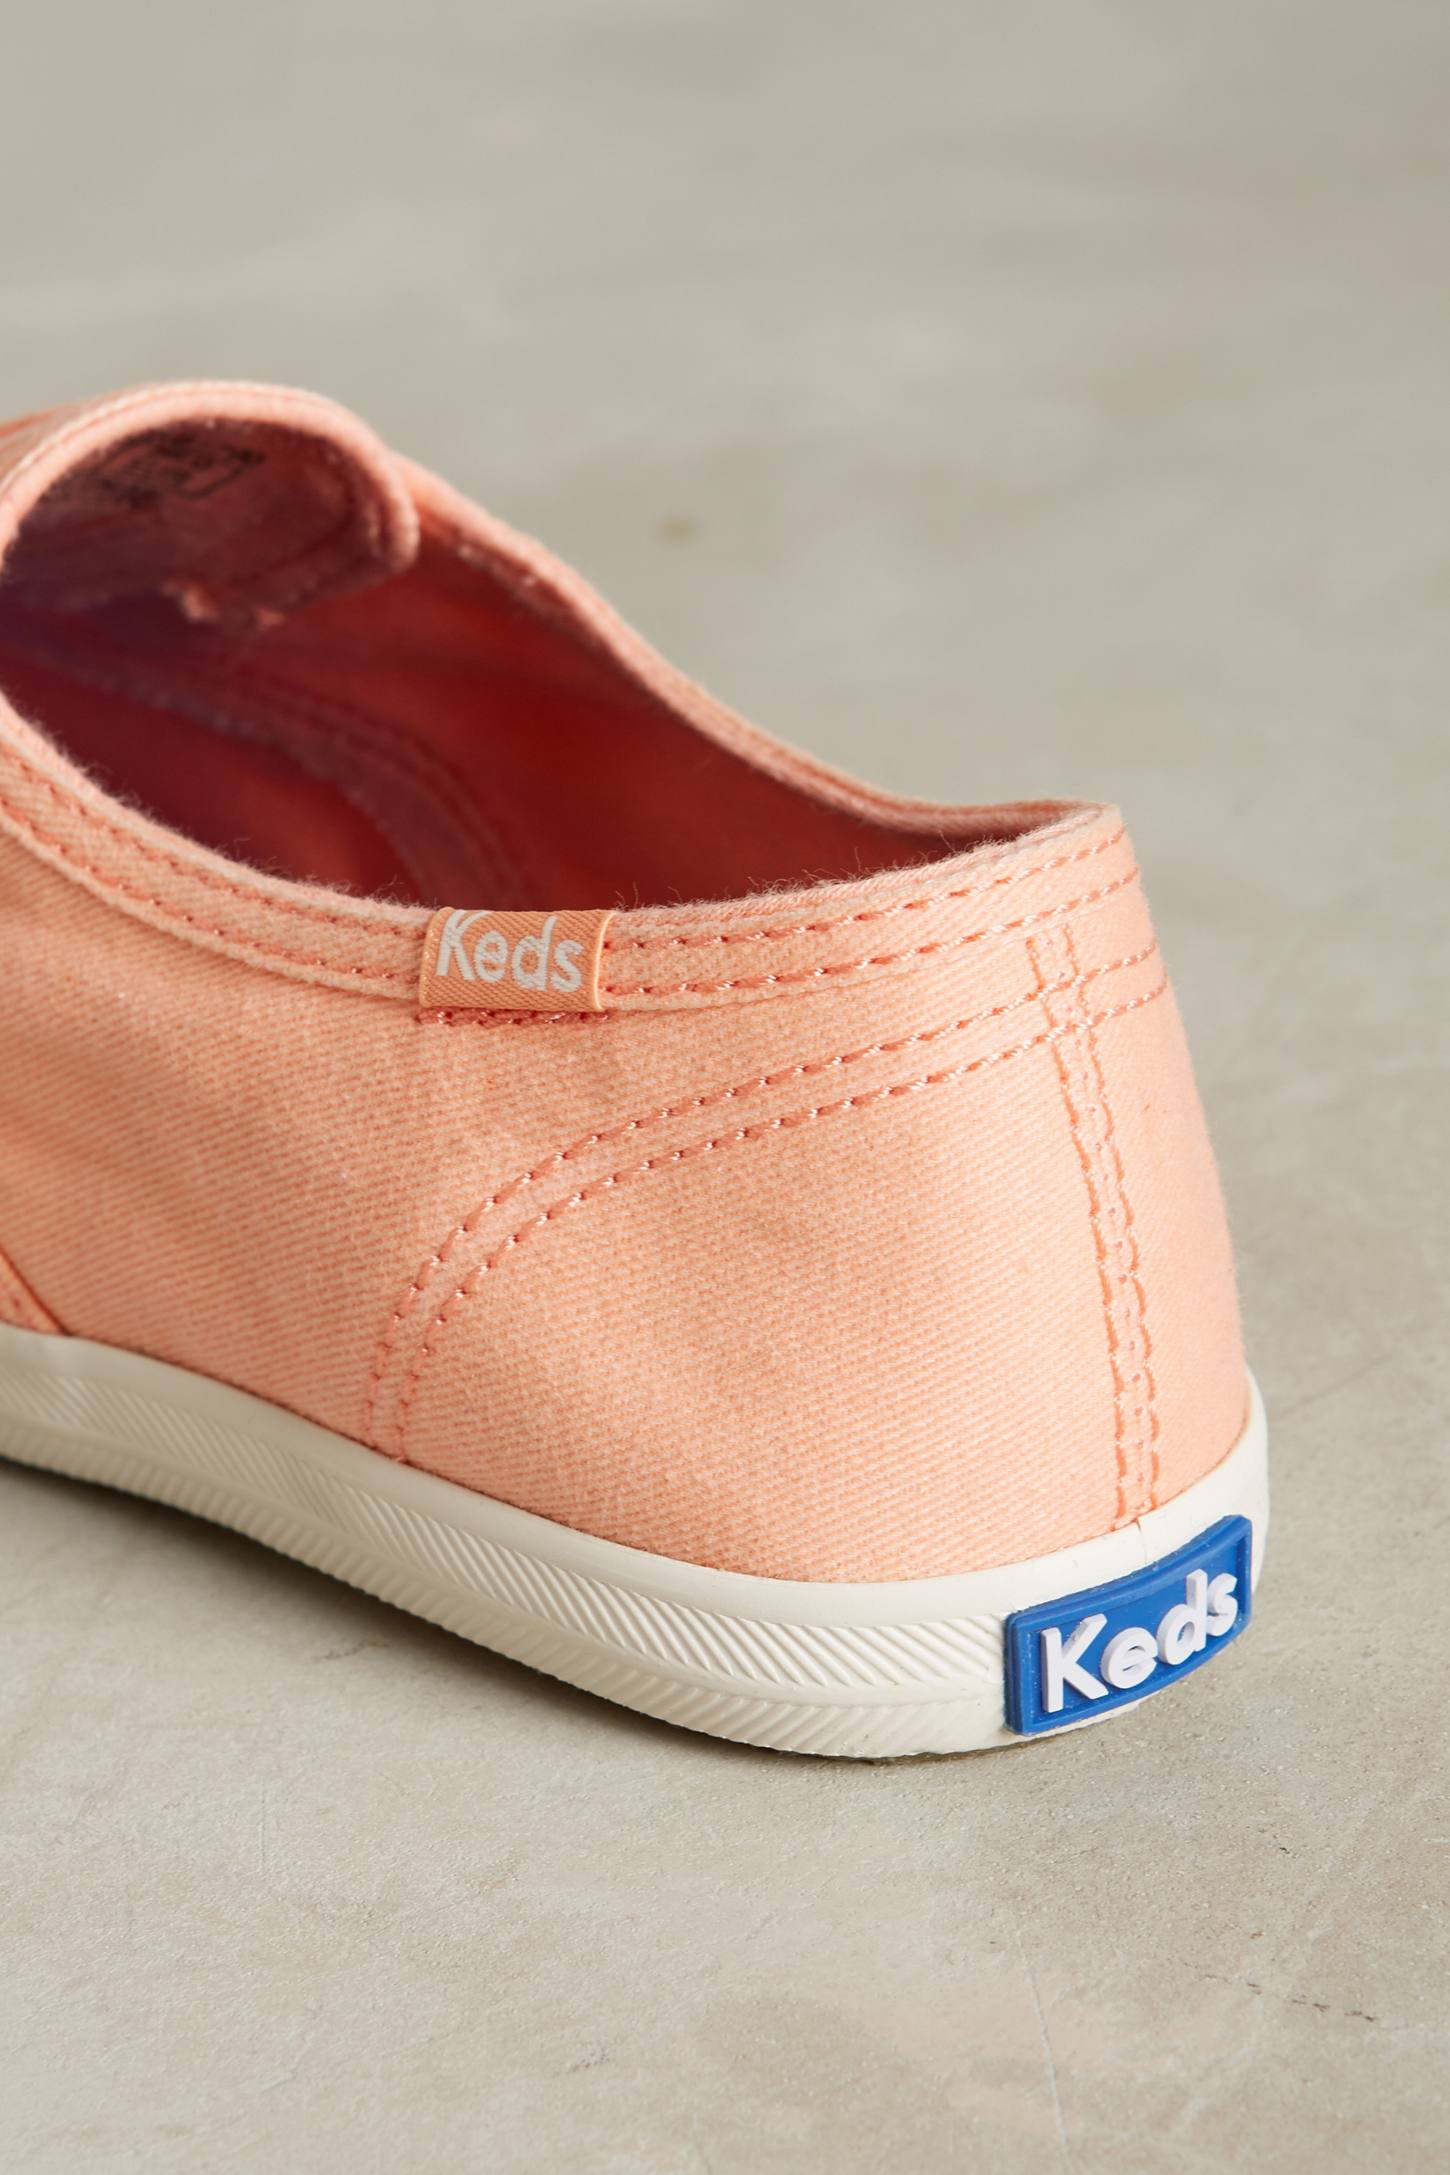 Slide View: 5: Keds Washed Canvas Sneakers